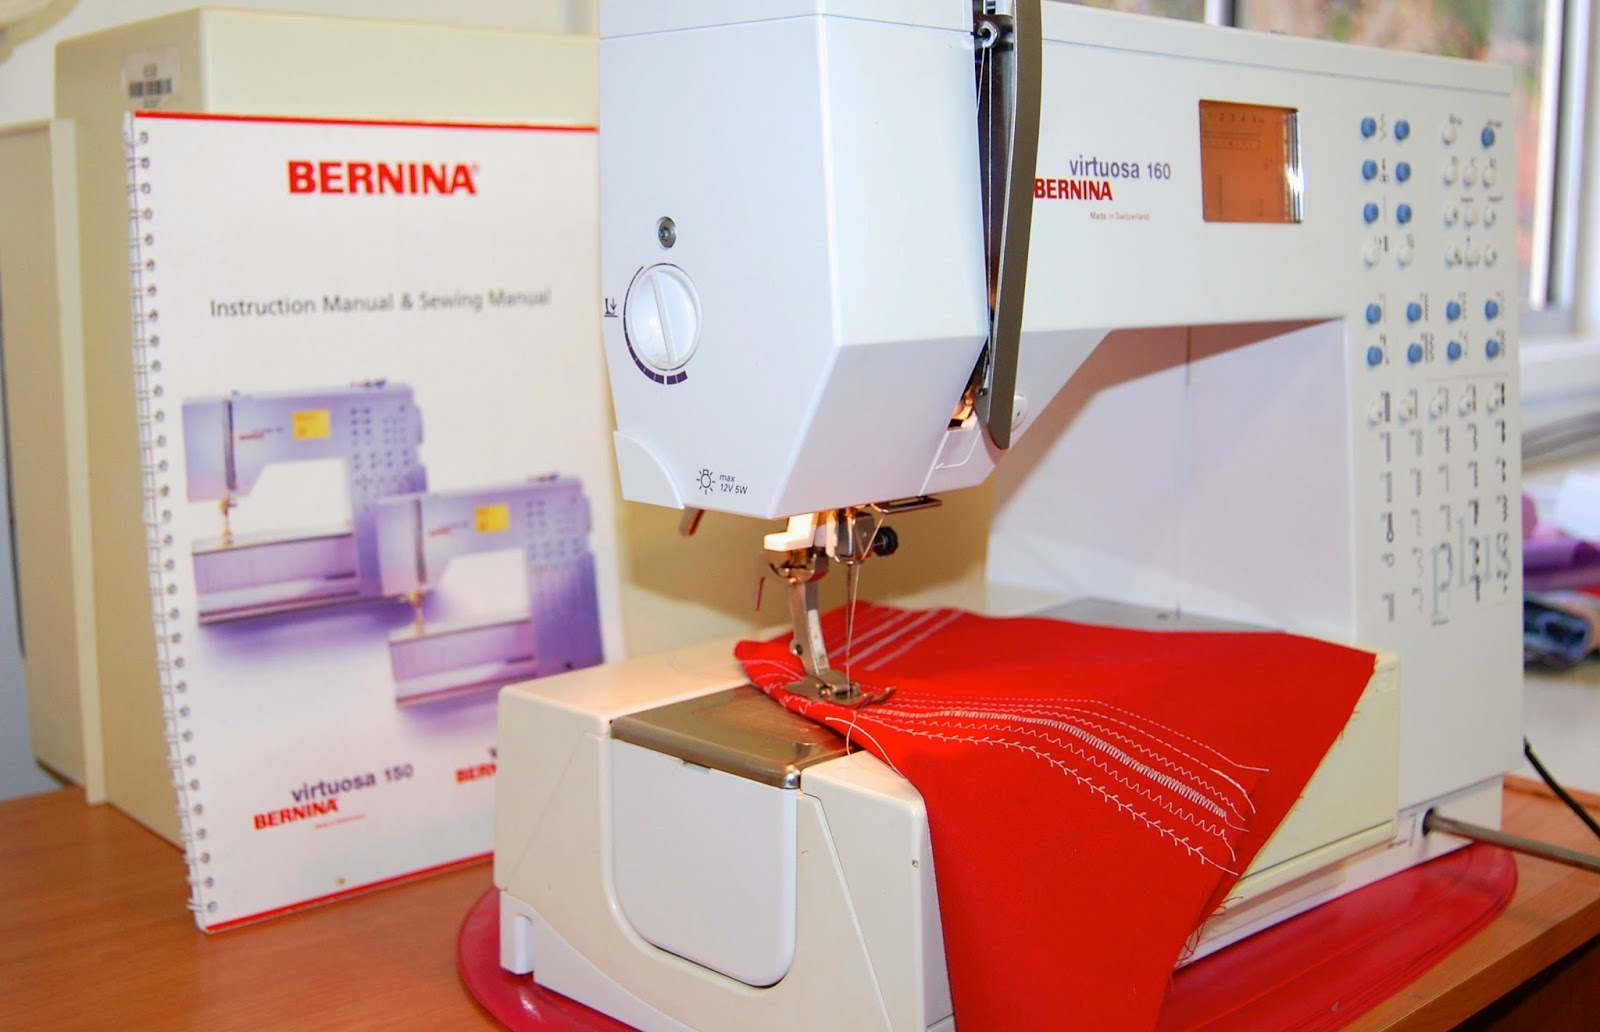 And sew it seams bernina sewing machines for sale and finally an activa 240 lots of features a smaller machine great for classes very reliable 1000 fandeluxe Images